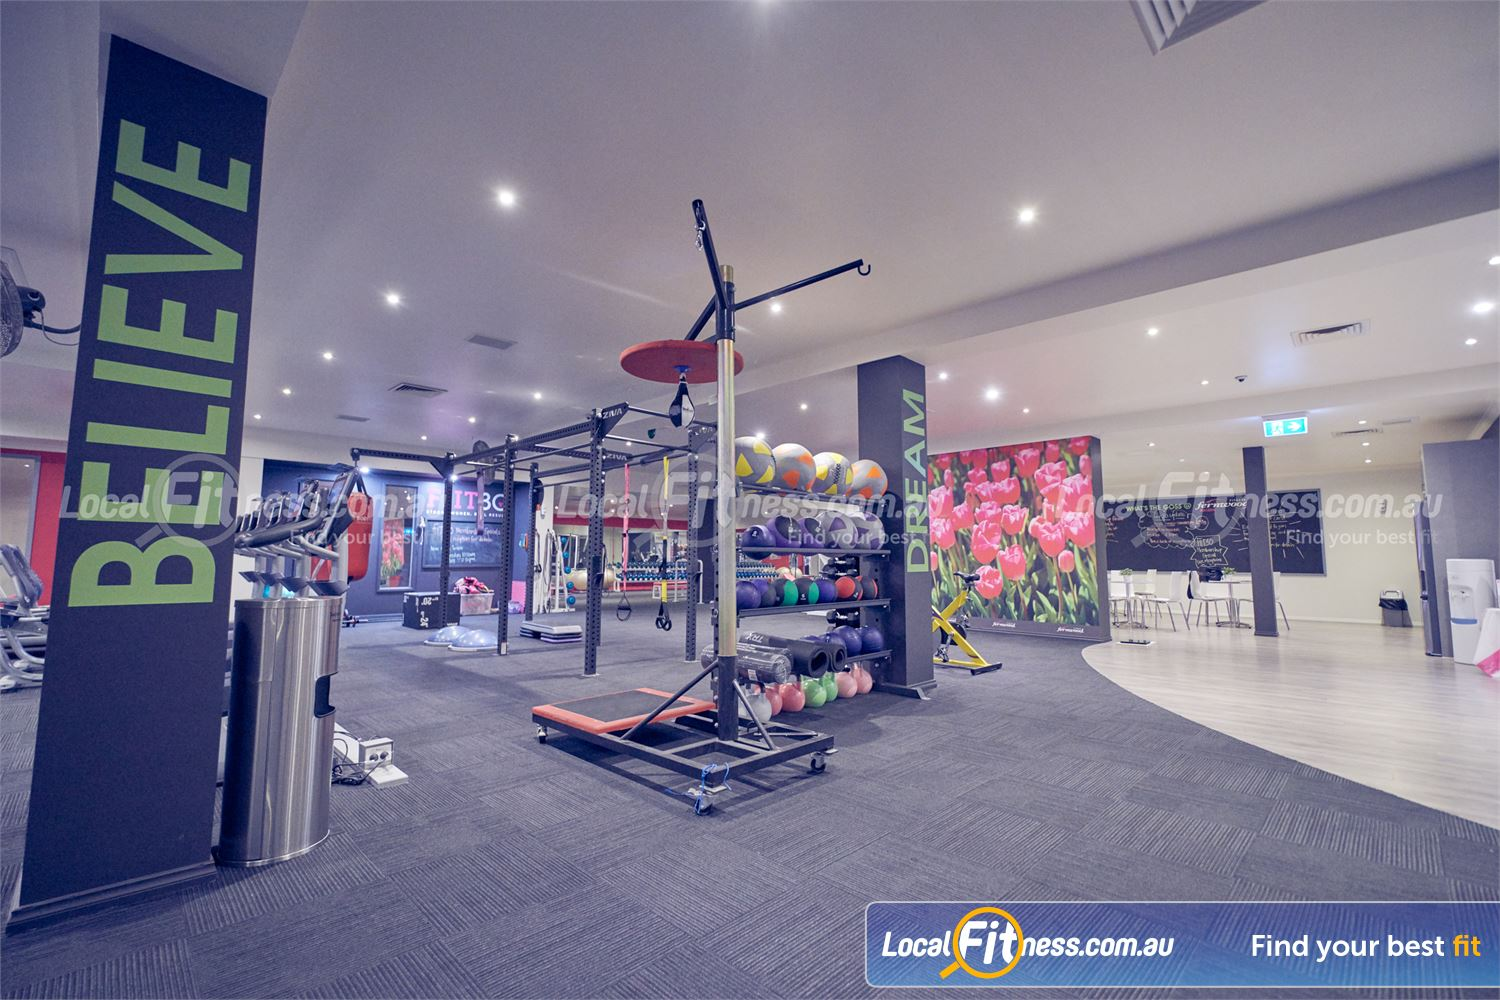 Fernwood Fitness Bulleen At Fernwood Bulleen, our 2 level facility is more than just a gym!